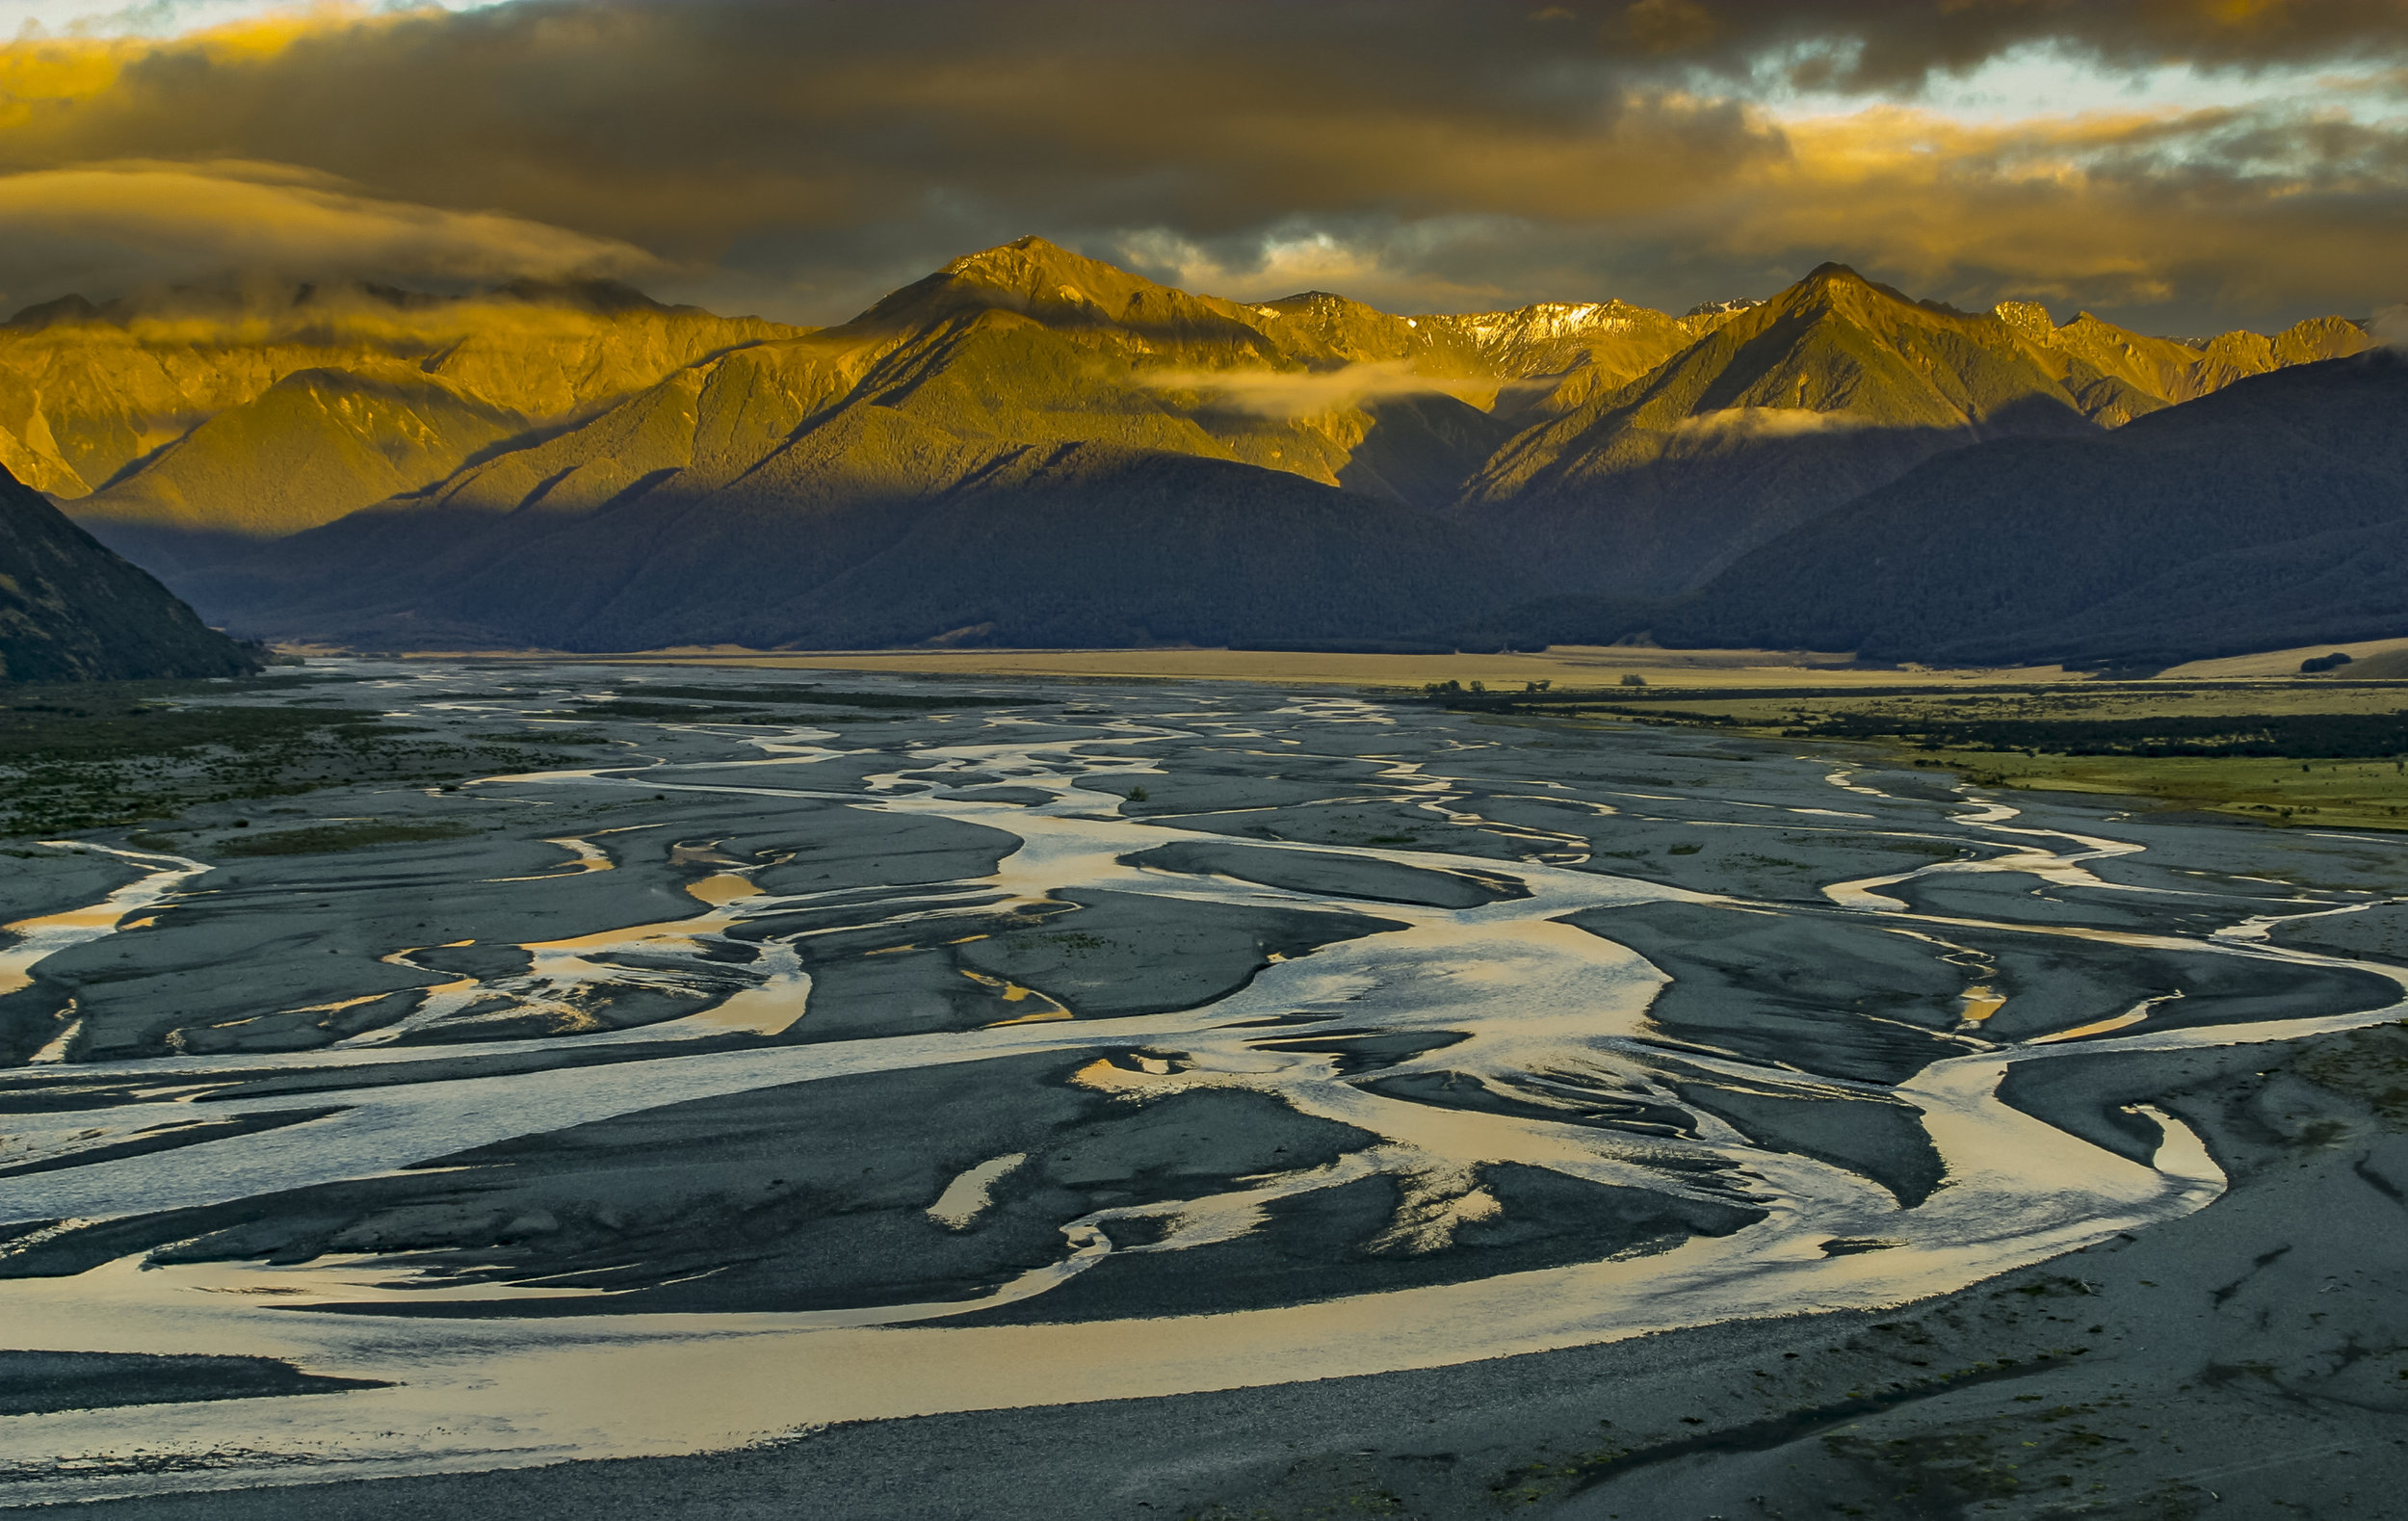 Photo info:  Waimakariri River, Canterbury, New Zealand. Photo credit: Professor Angus McIntosh/University of Canterbury